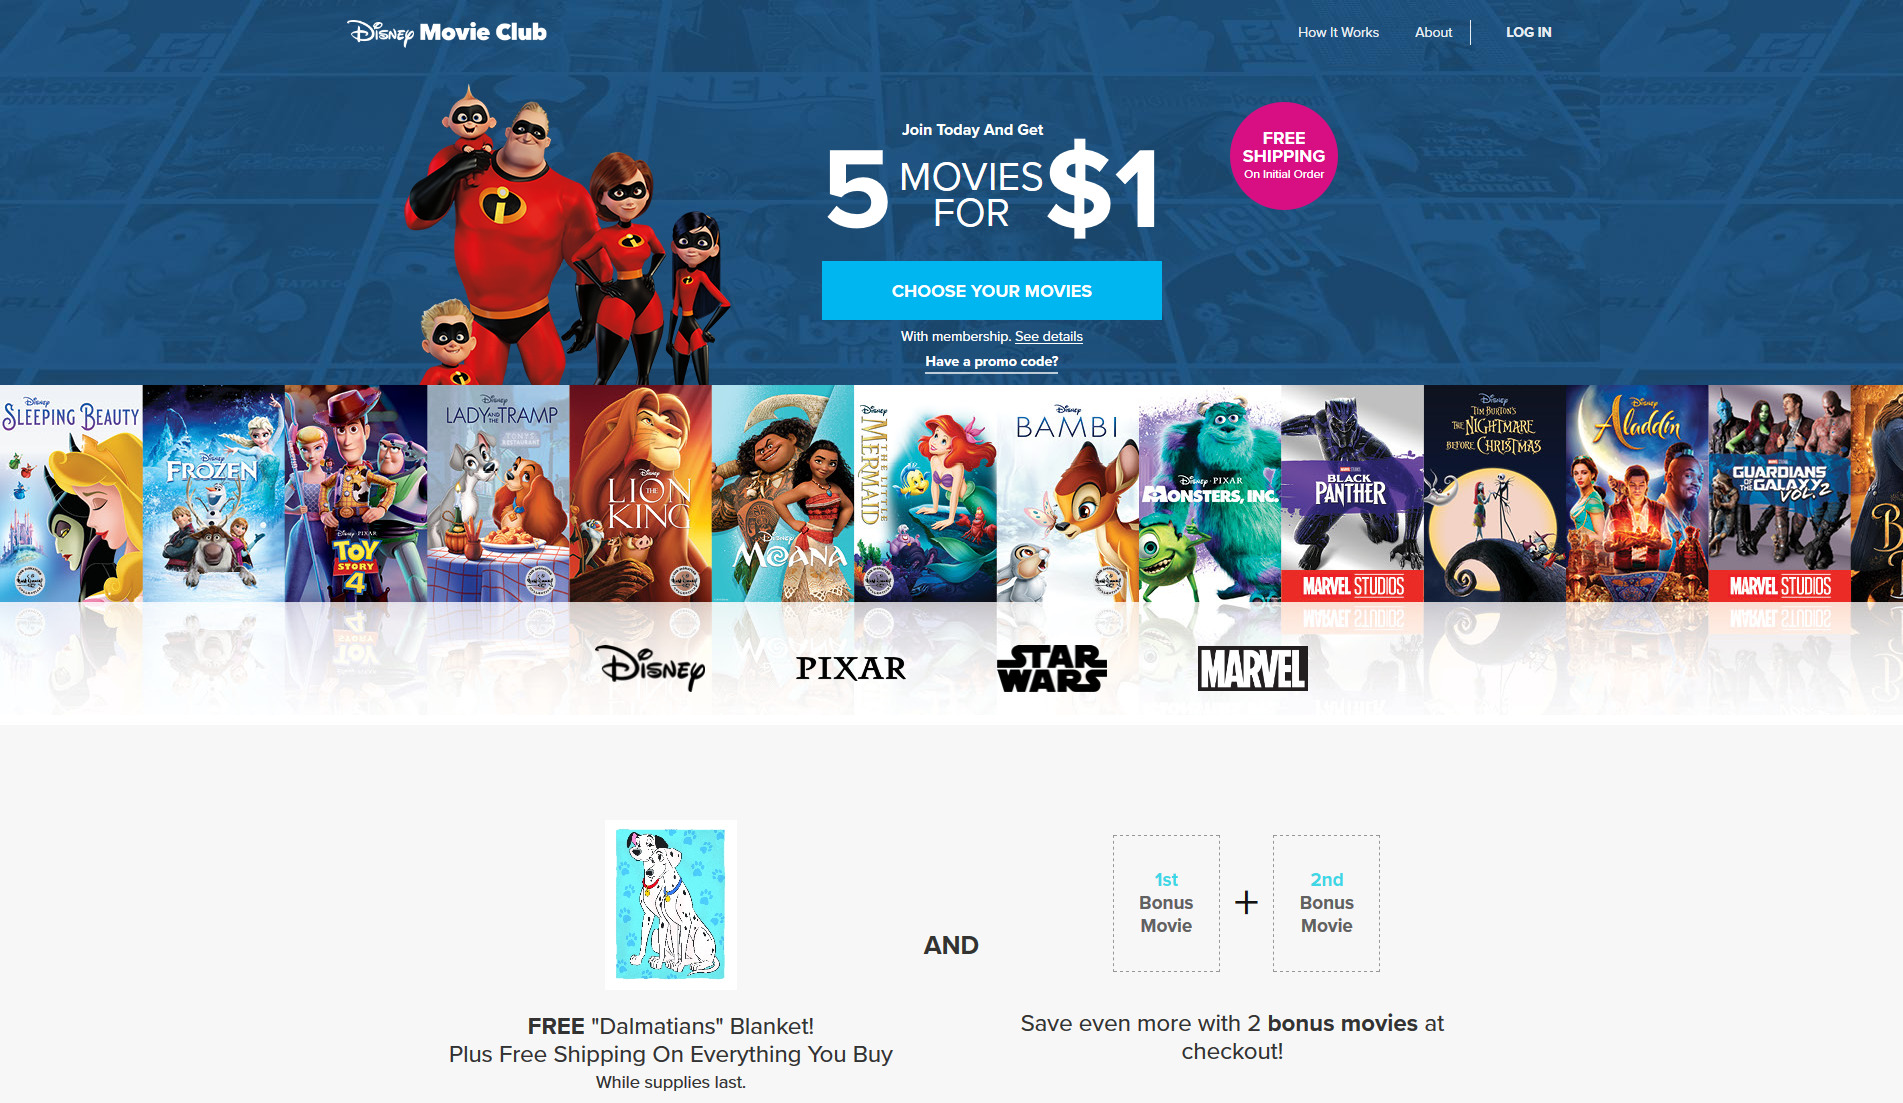 Screenshot_2020-03-31 Disney Movie Club Disney movies on Blu-ray, DVD Digital Code.jpg